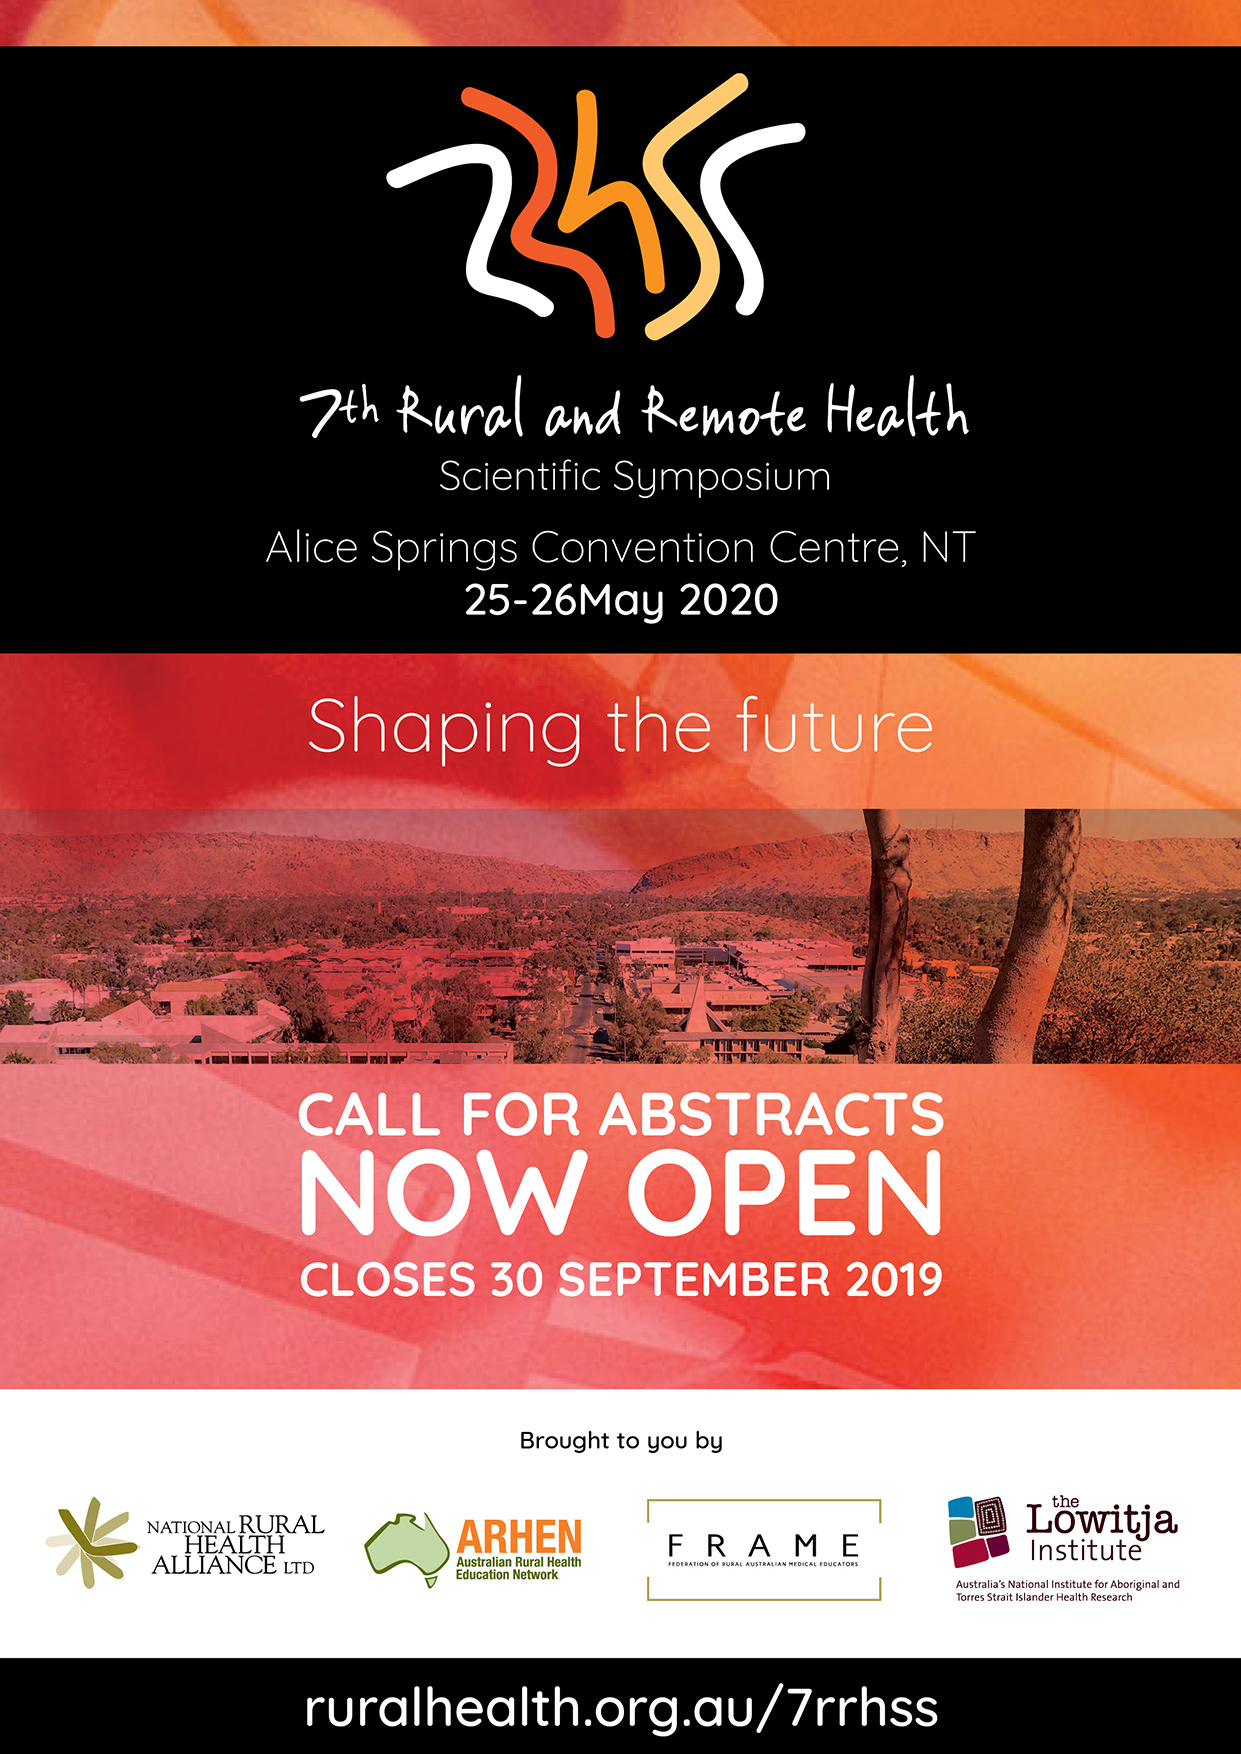 7th Rural & Remote Health Scientific Symposium